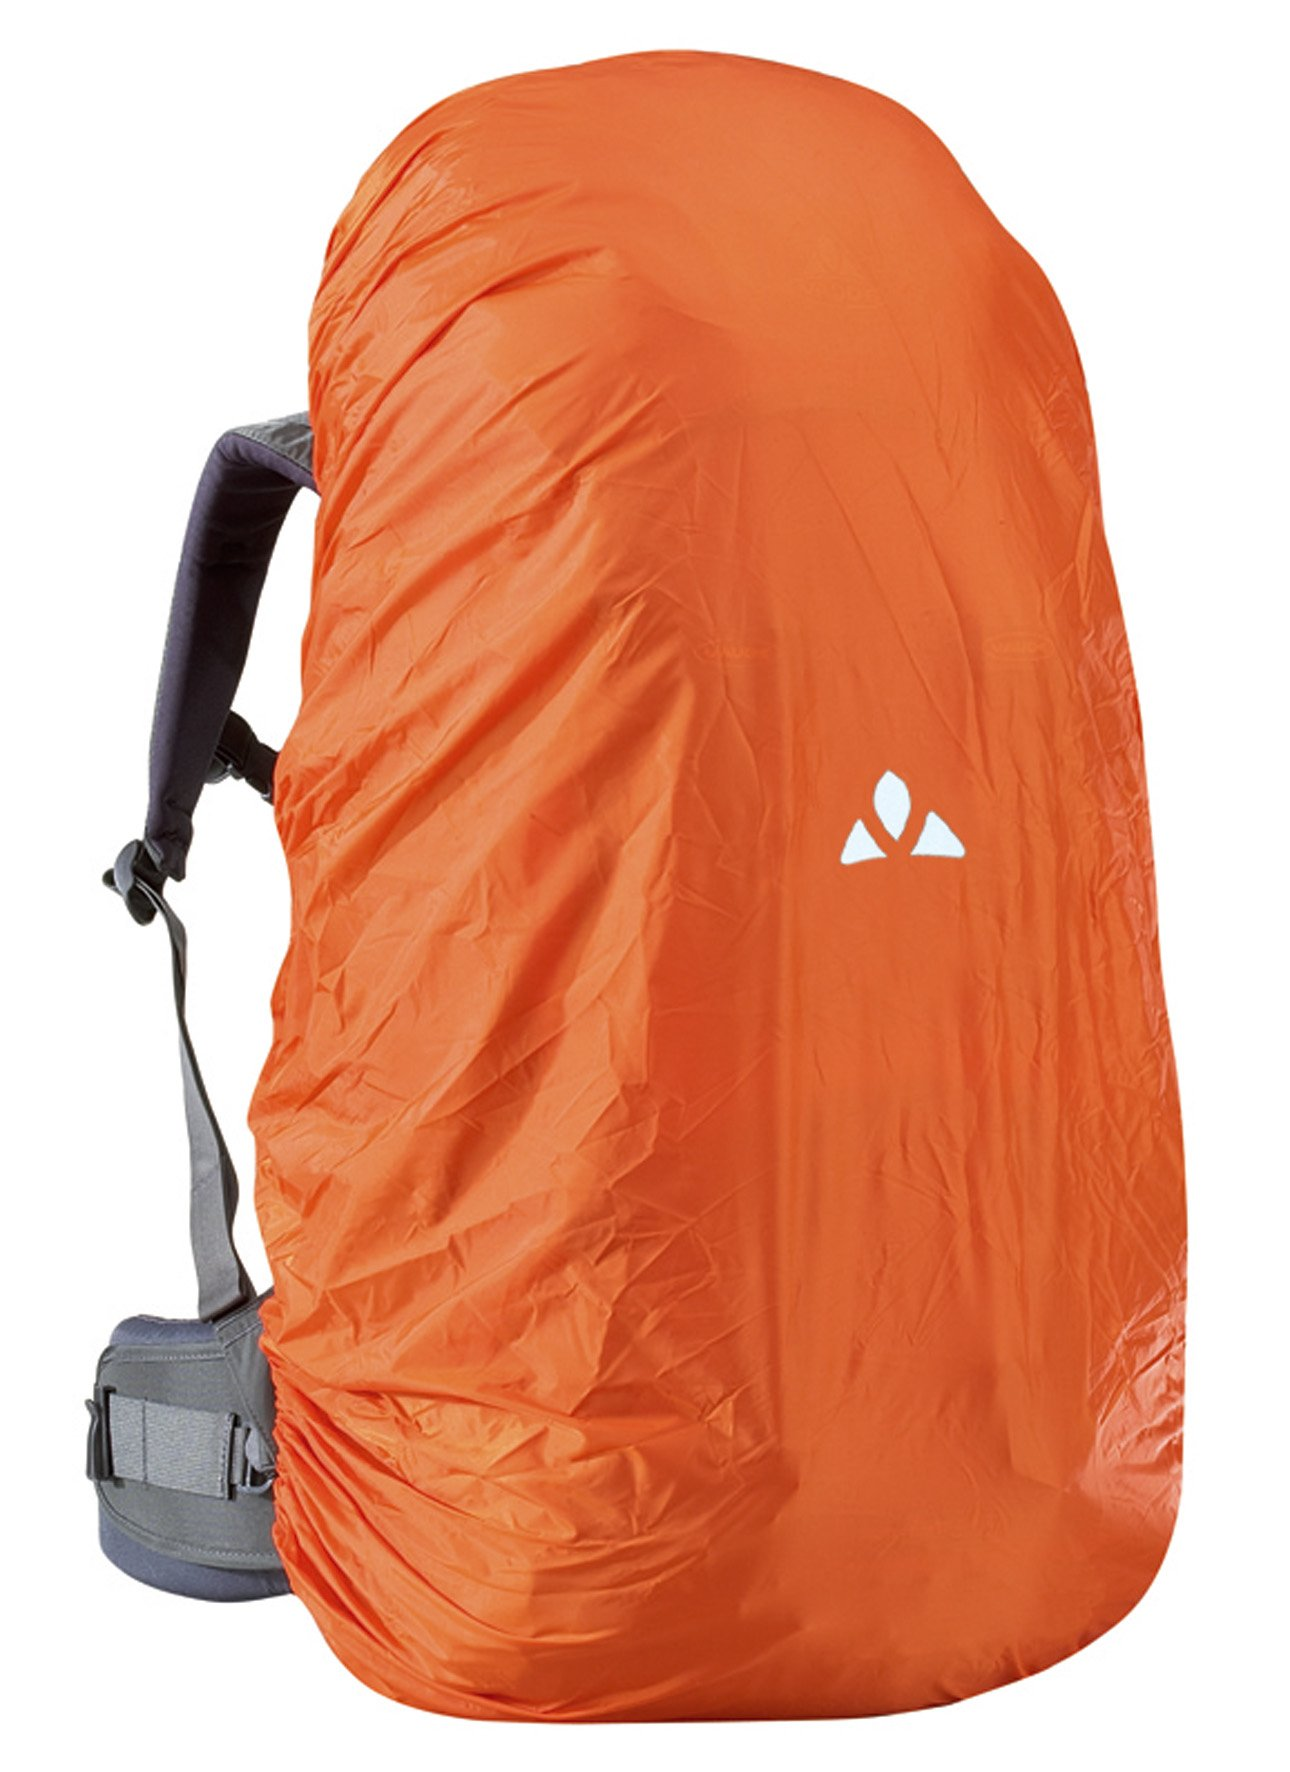 71YlgEBx90L - VAUDE Raincover for Backpacks 6-15 l orange backpack accessories